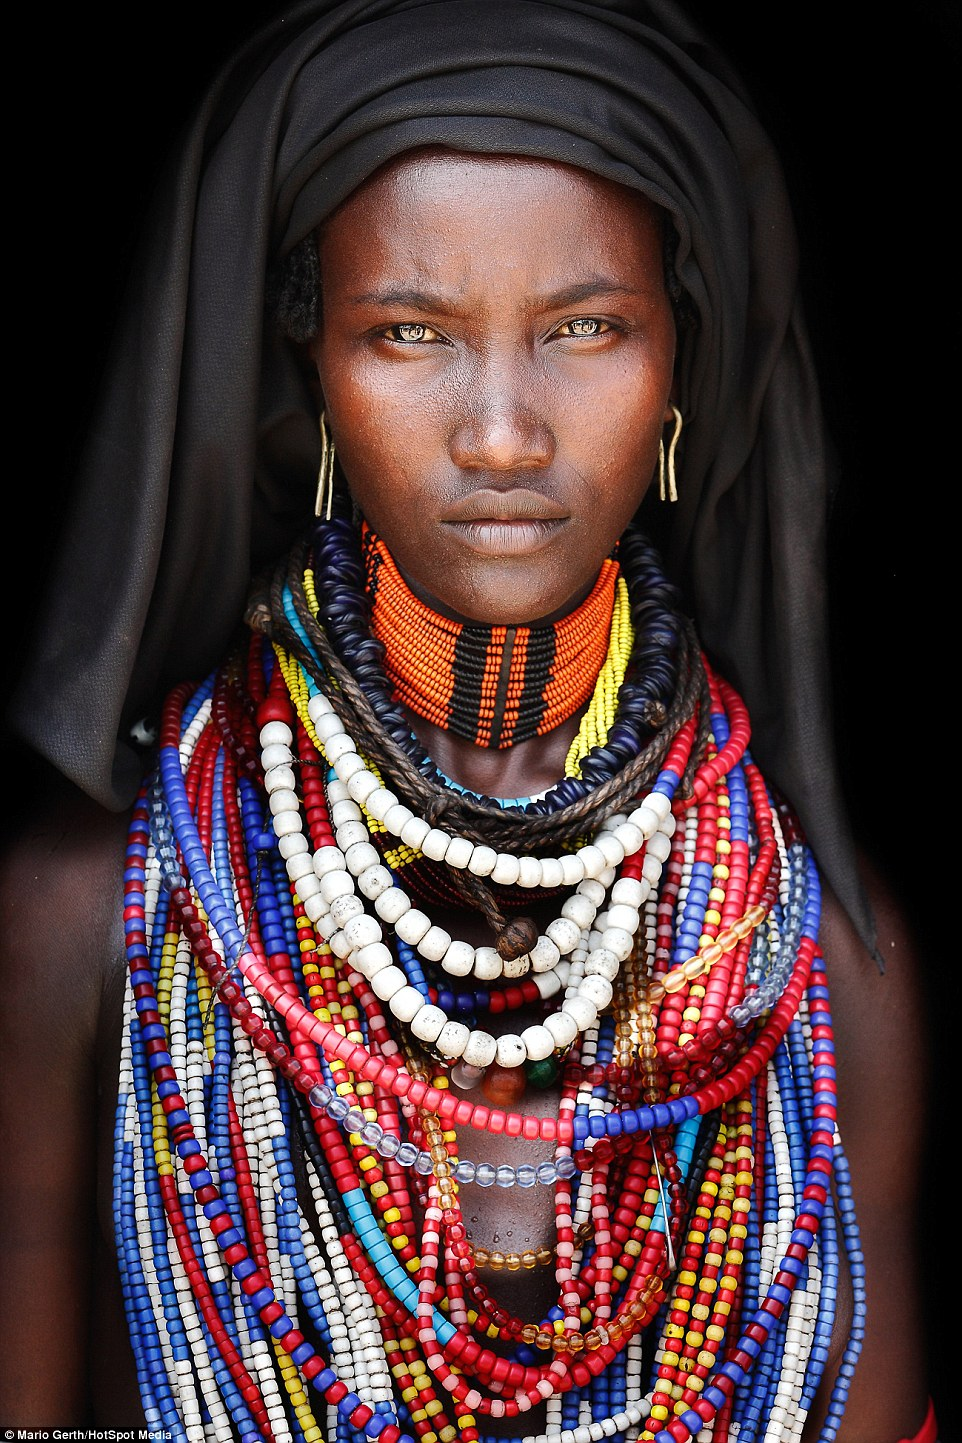 2E7D782D00000578-3320209-Women_from_the_Arbore_tribe_cover_their_heads_with_black_cloths_-a-19_1447672481694.jpg